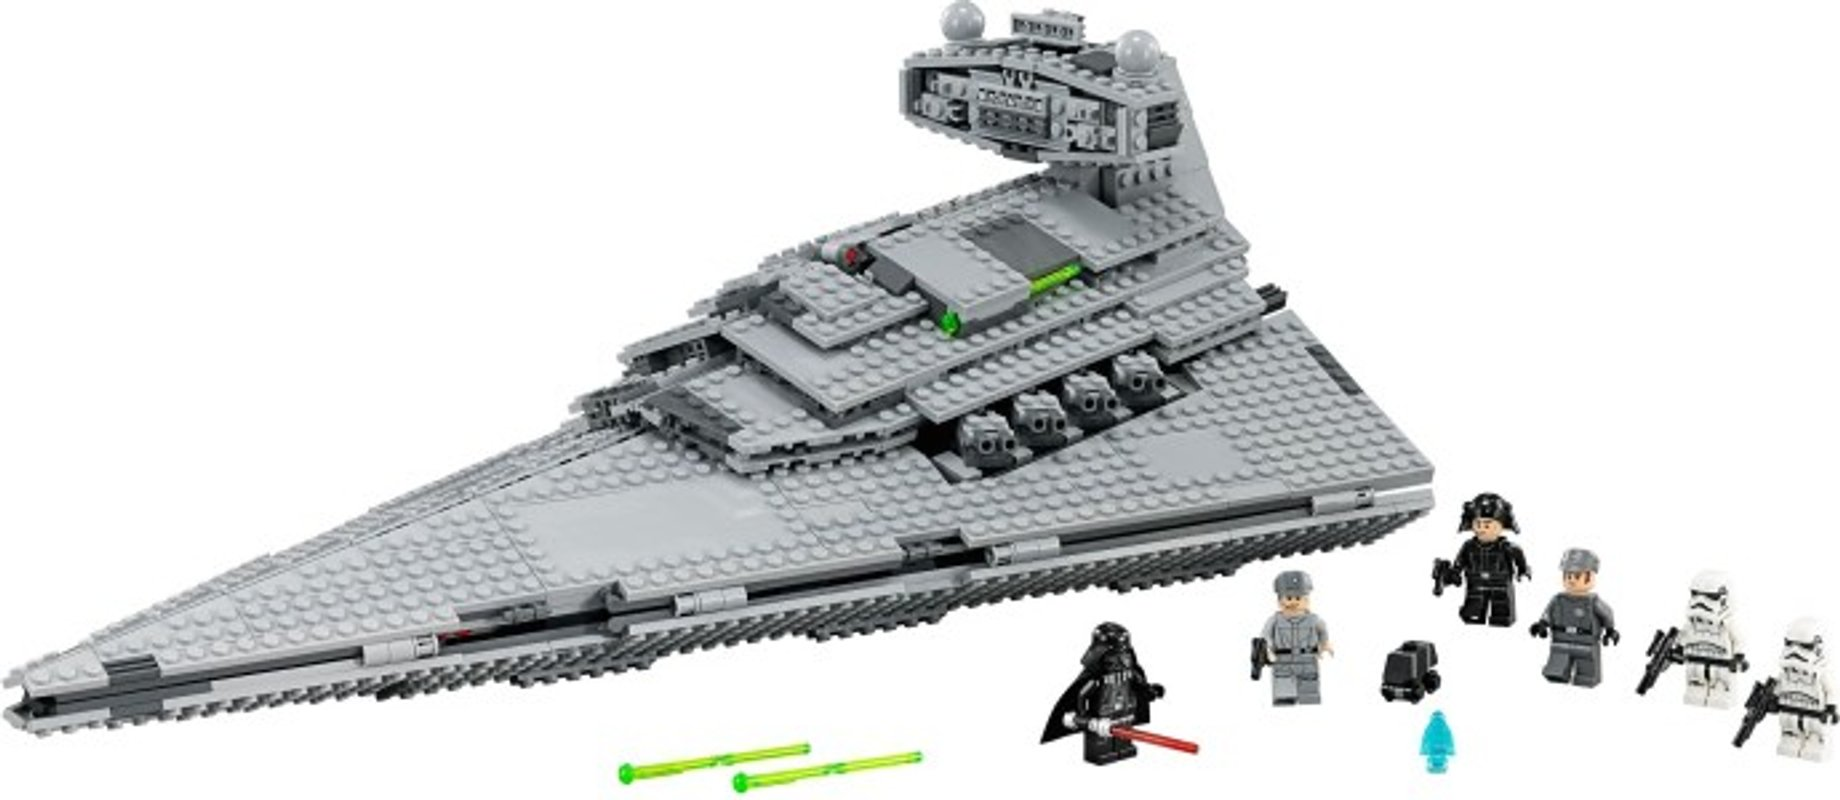 Imperial Star Destroyer minifigures